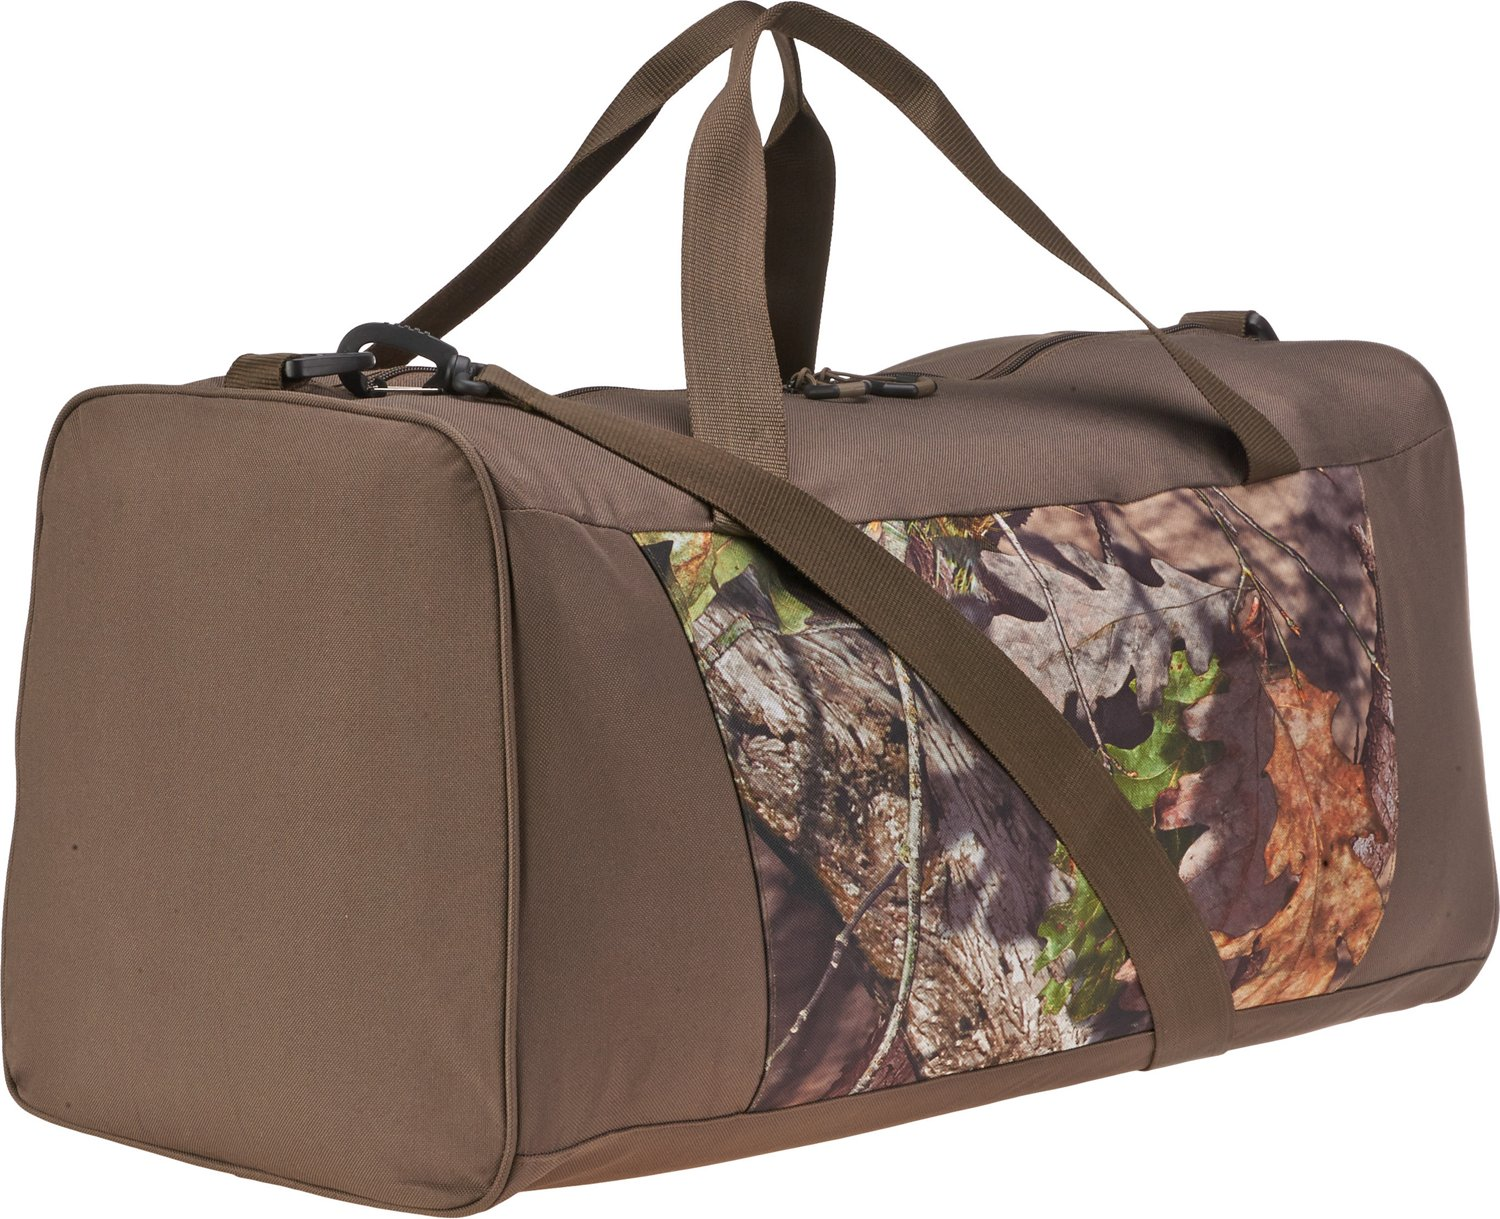 Game Winner® Camo Duffel Bag - view number 1